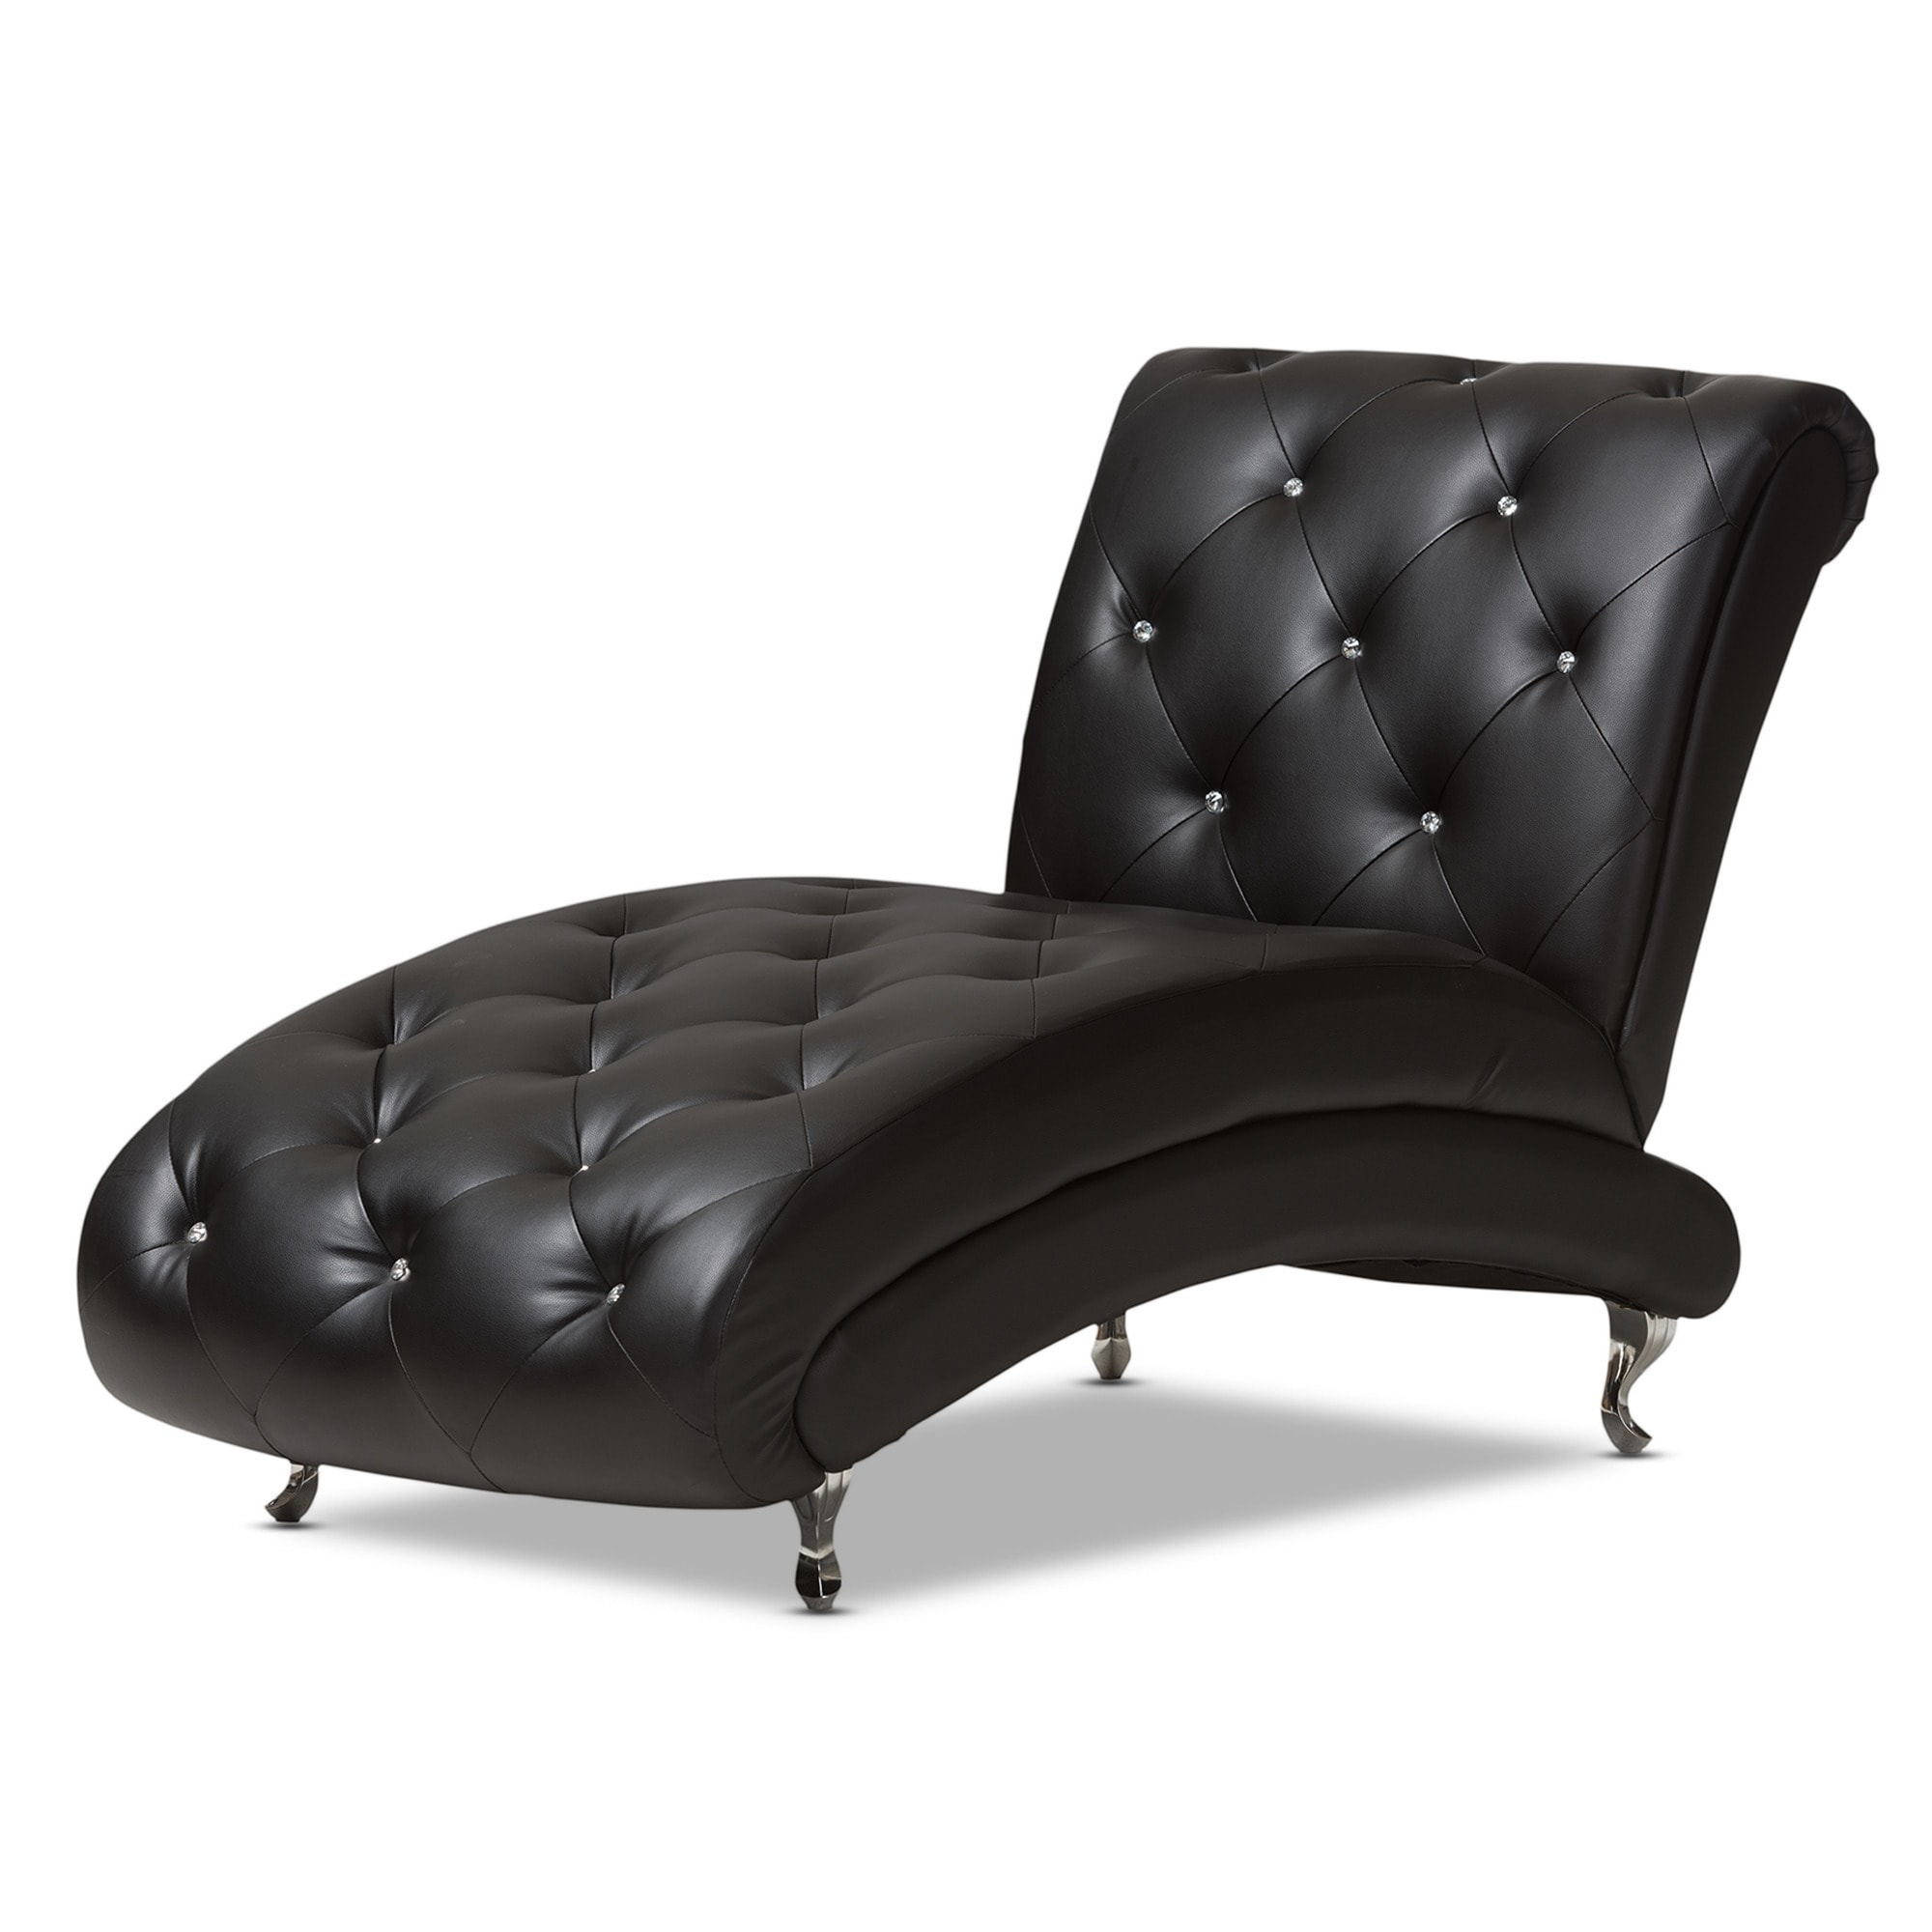 baxton studio pease contemporary black faux leather crystal tufted chaiselounge  free shipping today  overstockcom  . baxton studio pease contemporary black faux leather crystal tufted